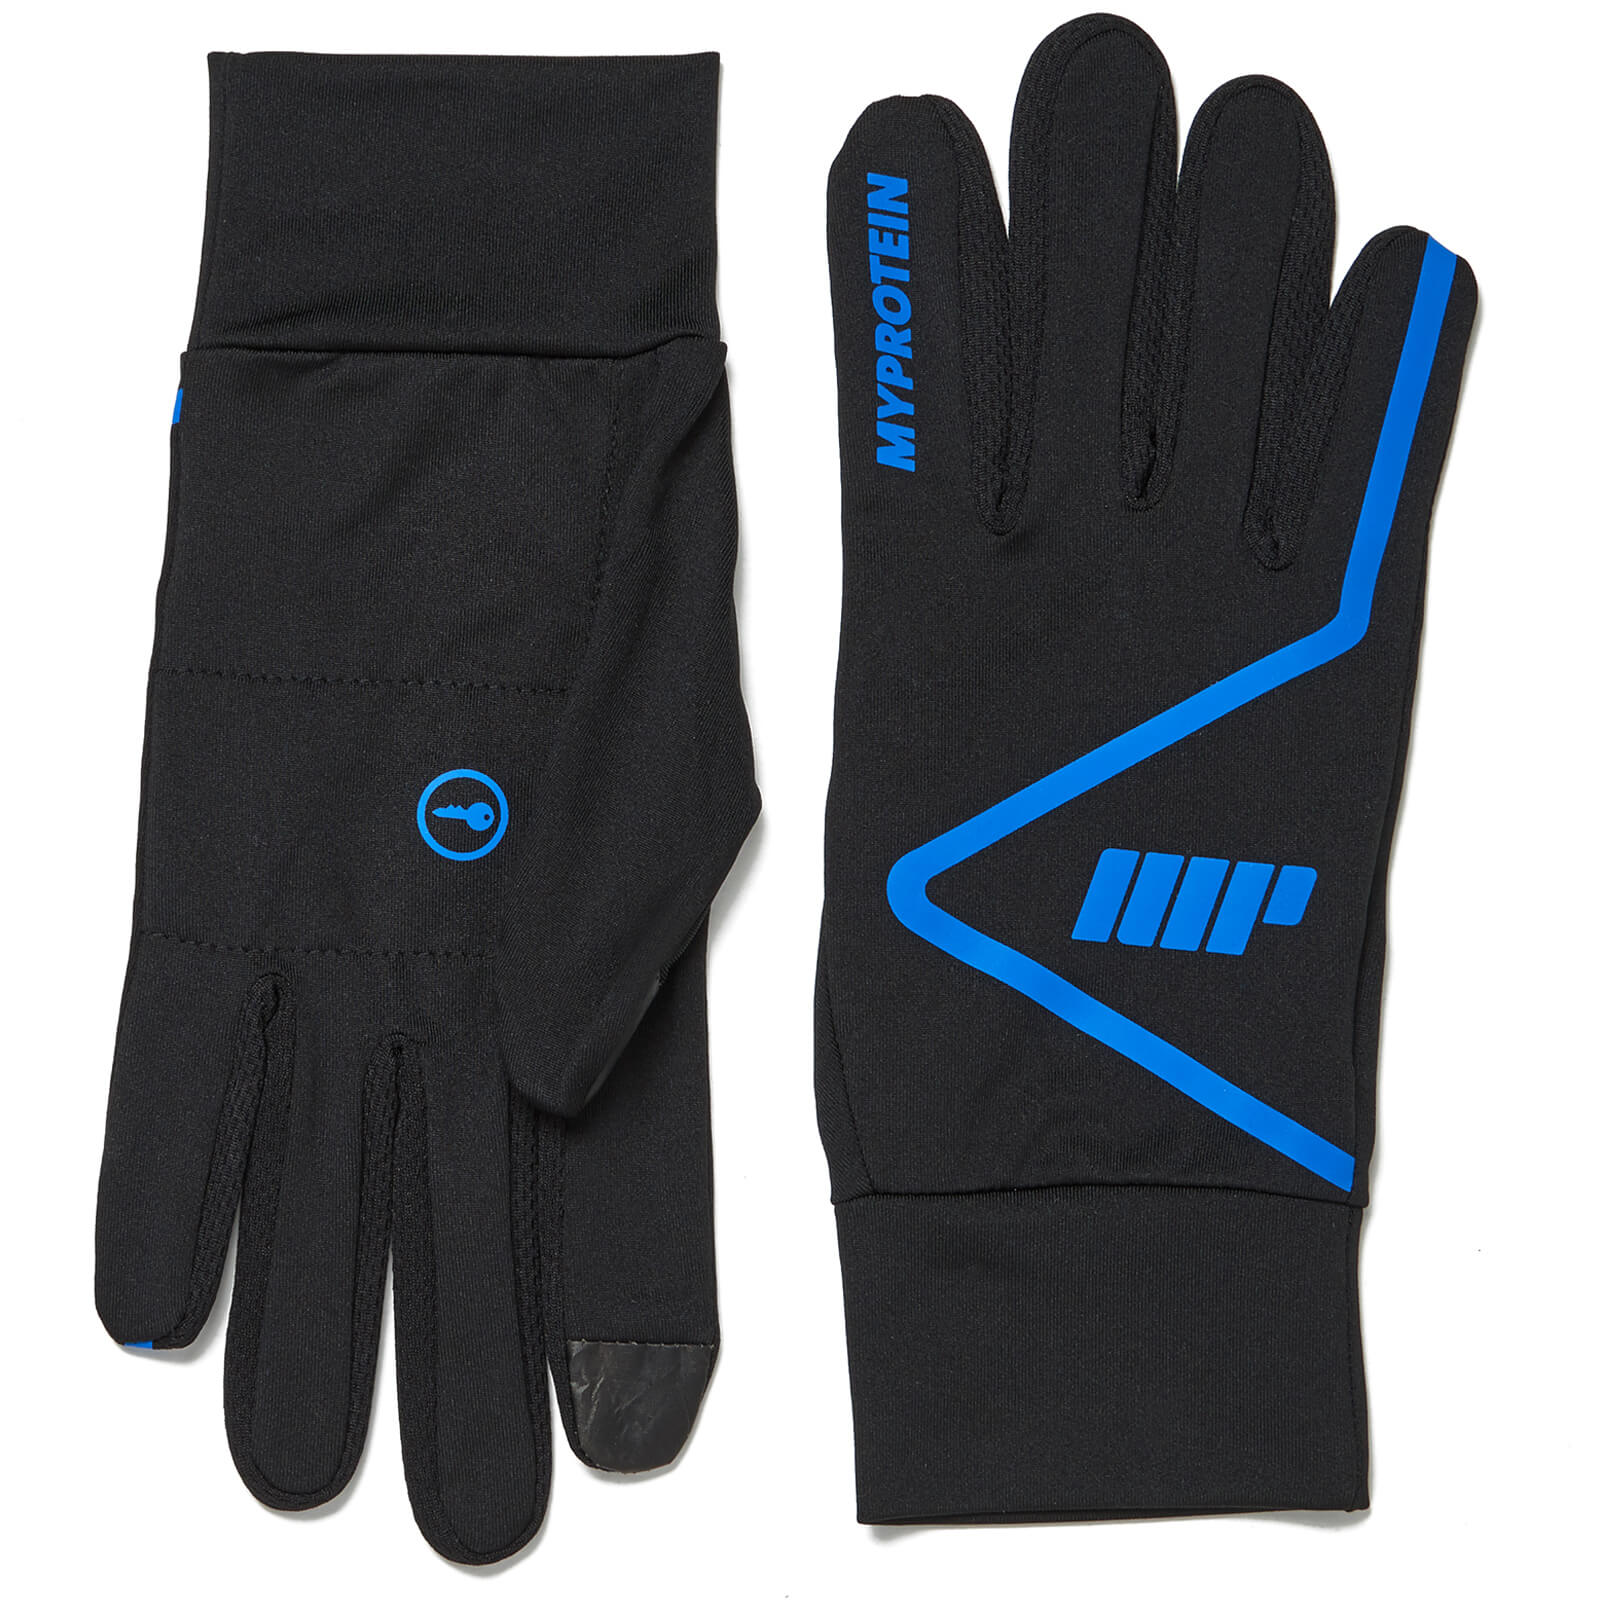 Myprotein Core Running Gloves - Black - S/M